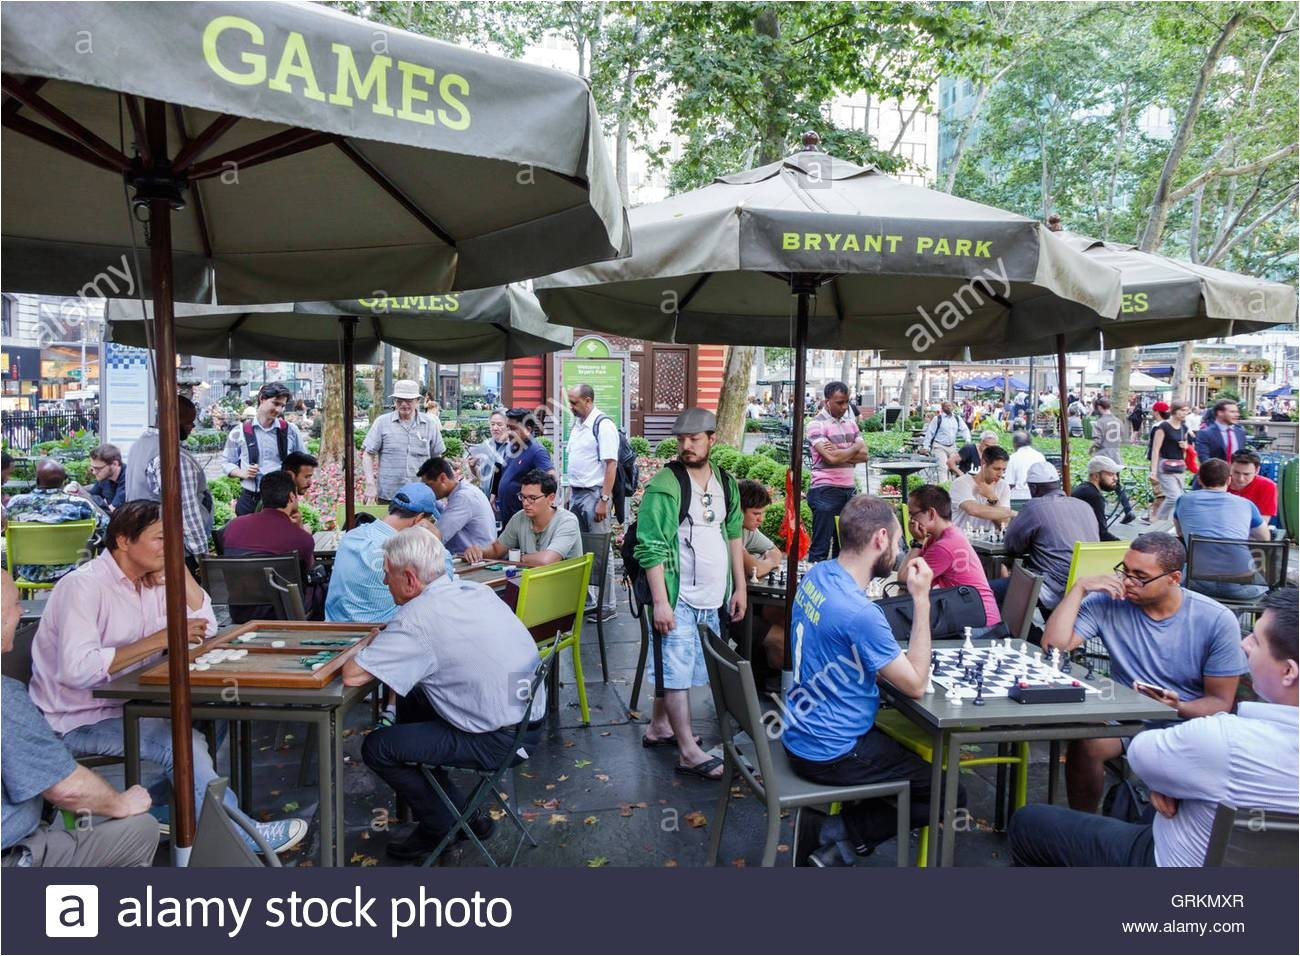 manhattan new york city nyc ny midtown bryant park public park games chess backgammon playing board